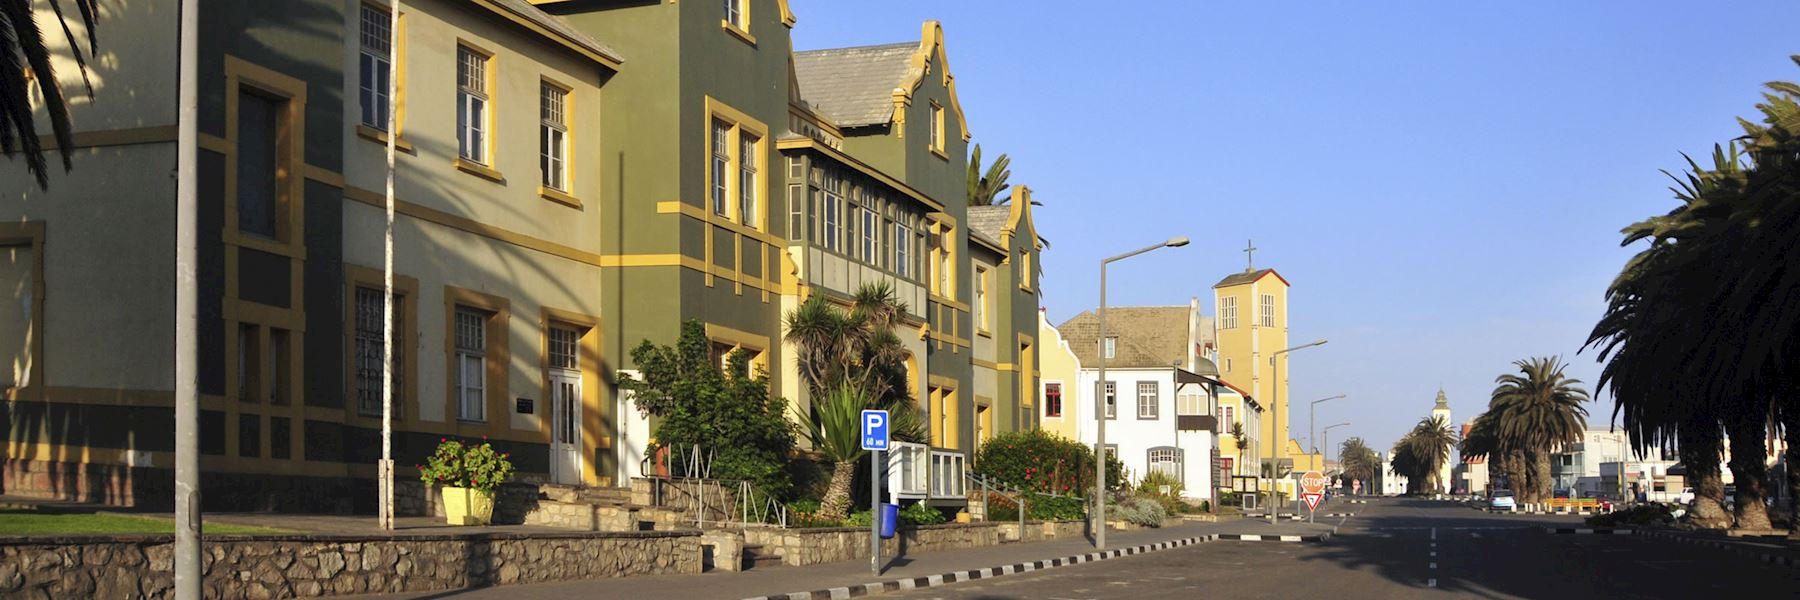 Visit Swakopmund and Pelican Point, Namibia